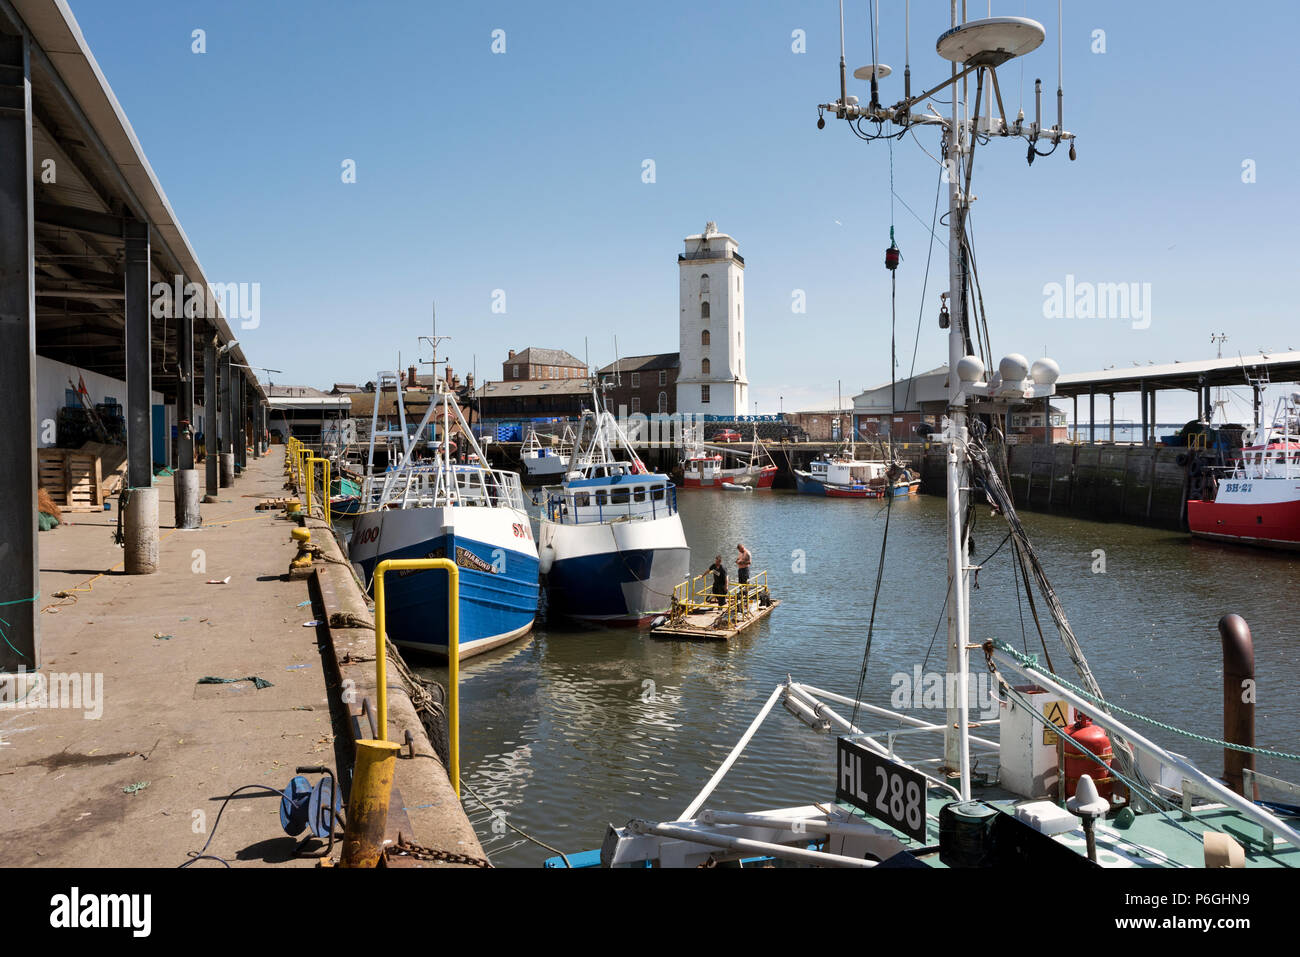 The Fishing Quay at North Shields, Tyneside, UK, with the Low Light in the background - Stock Image